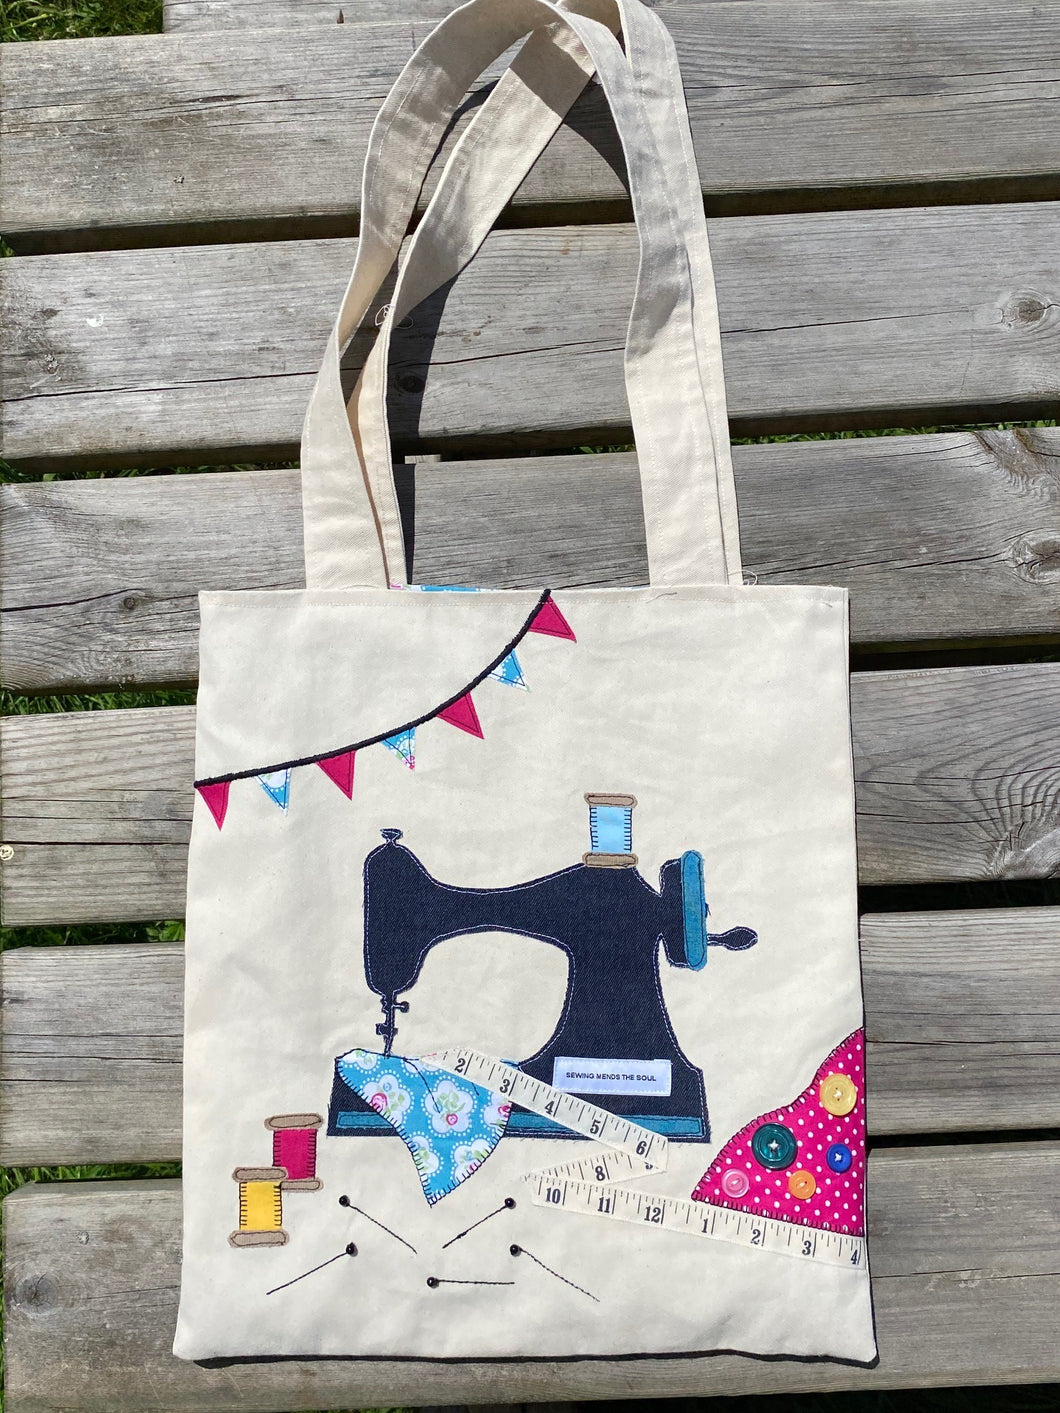 Sewer's Paradise Applique Tote Bag Kit